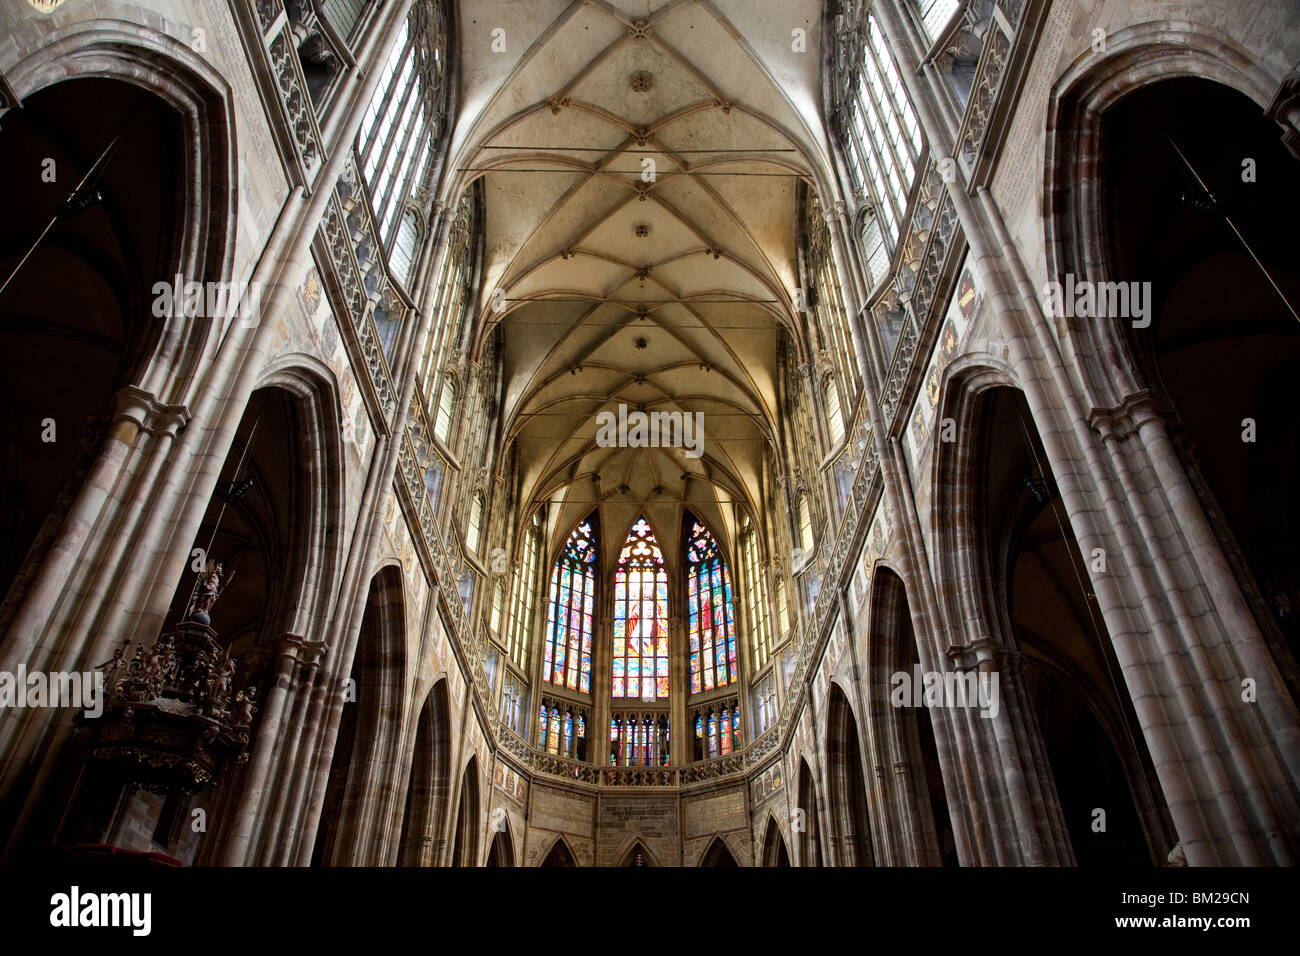 Interior of St. Vitus's Cathedral with archs and vaulting in Choir, Prague Castle, Prague, Czech Republic - Stock Image